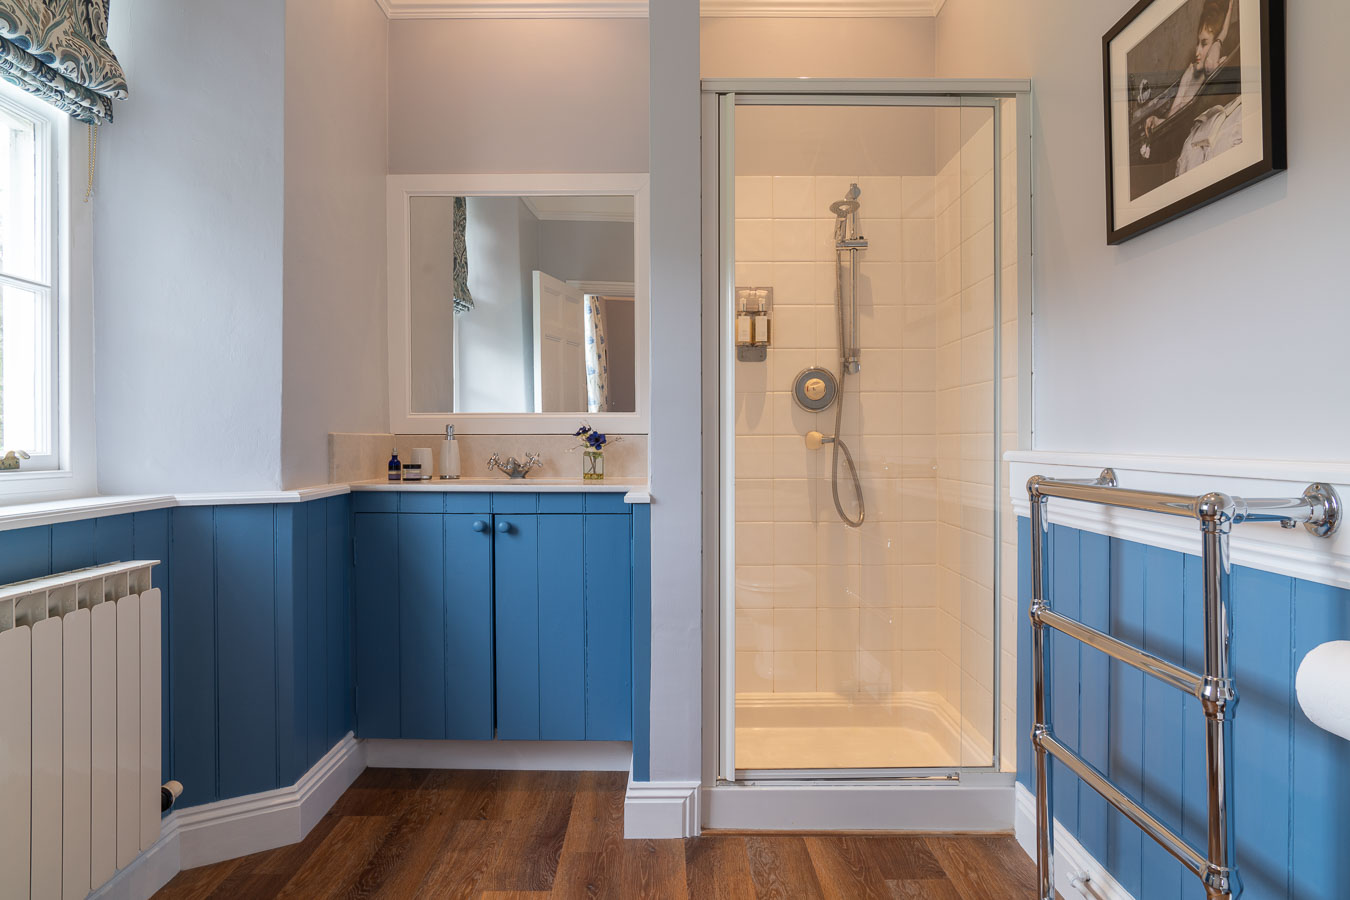 The blue bathroom which is en suit to the blue bedroom in Flear House.